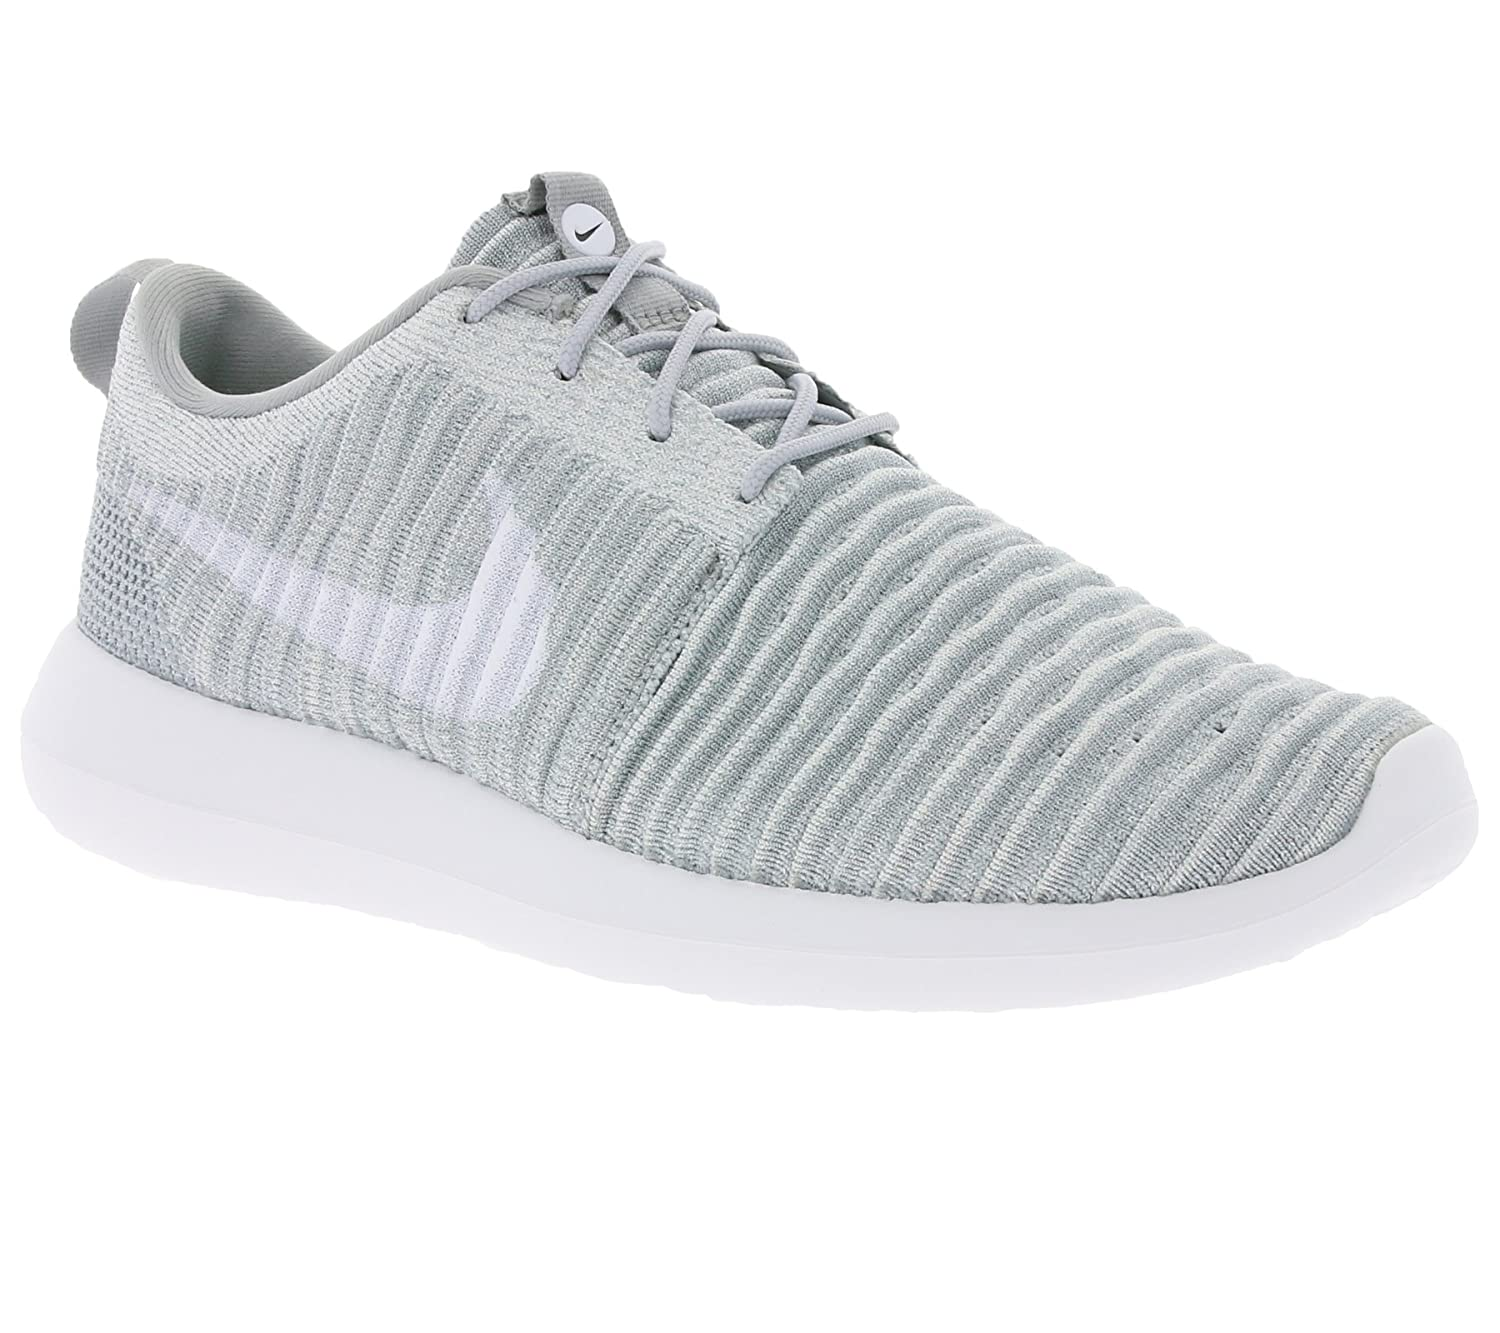 538d9536ce97 Nike Roshe Two Flyknit Mens Running Trainers 844833 Sneakers Shoes (UK 6 US  6.5 EU 39